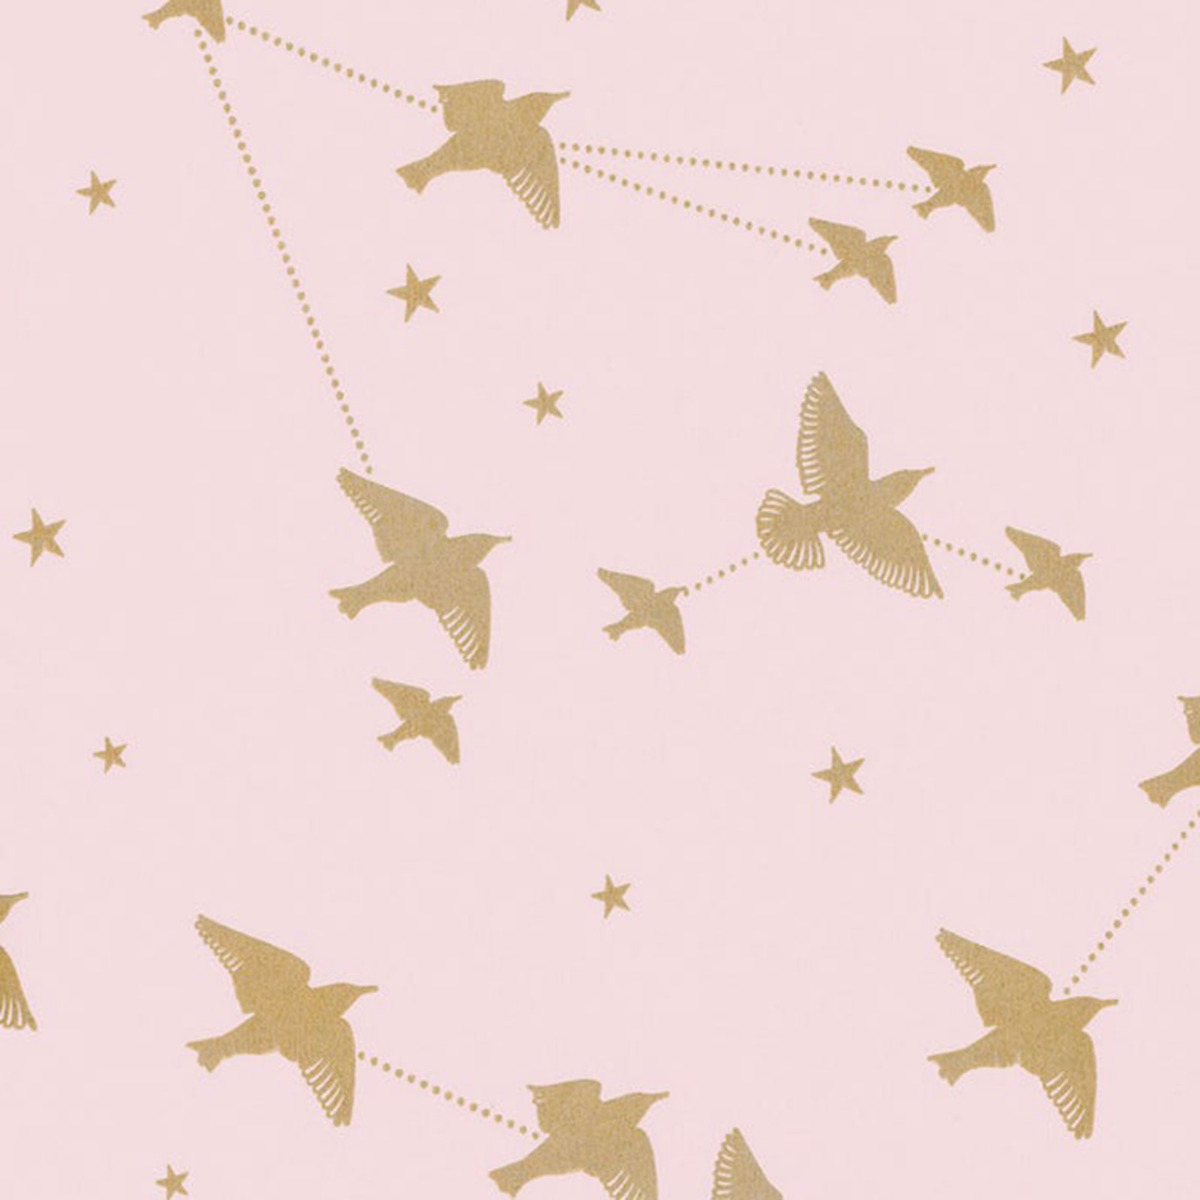 starling star bird wallpaper gold pink